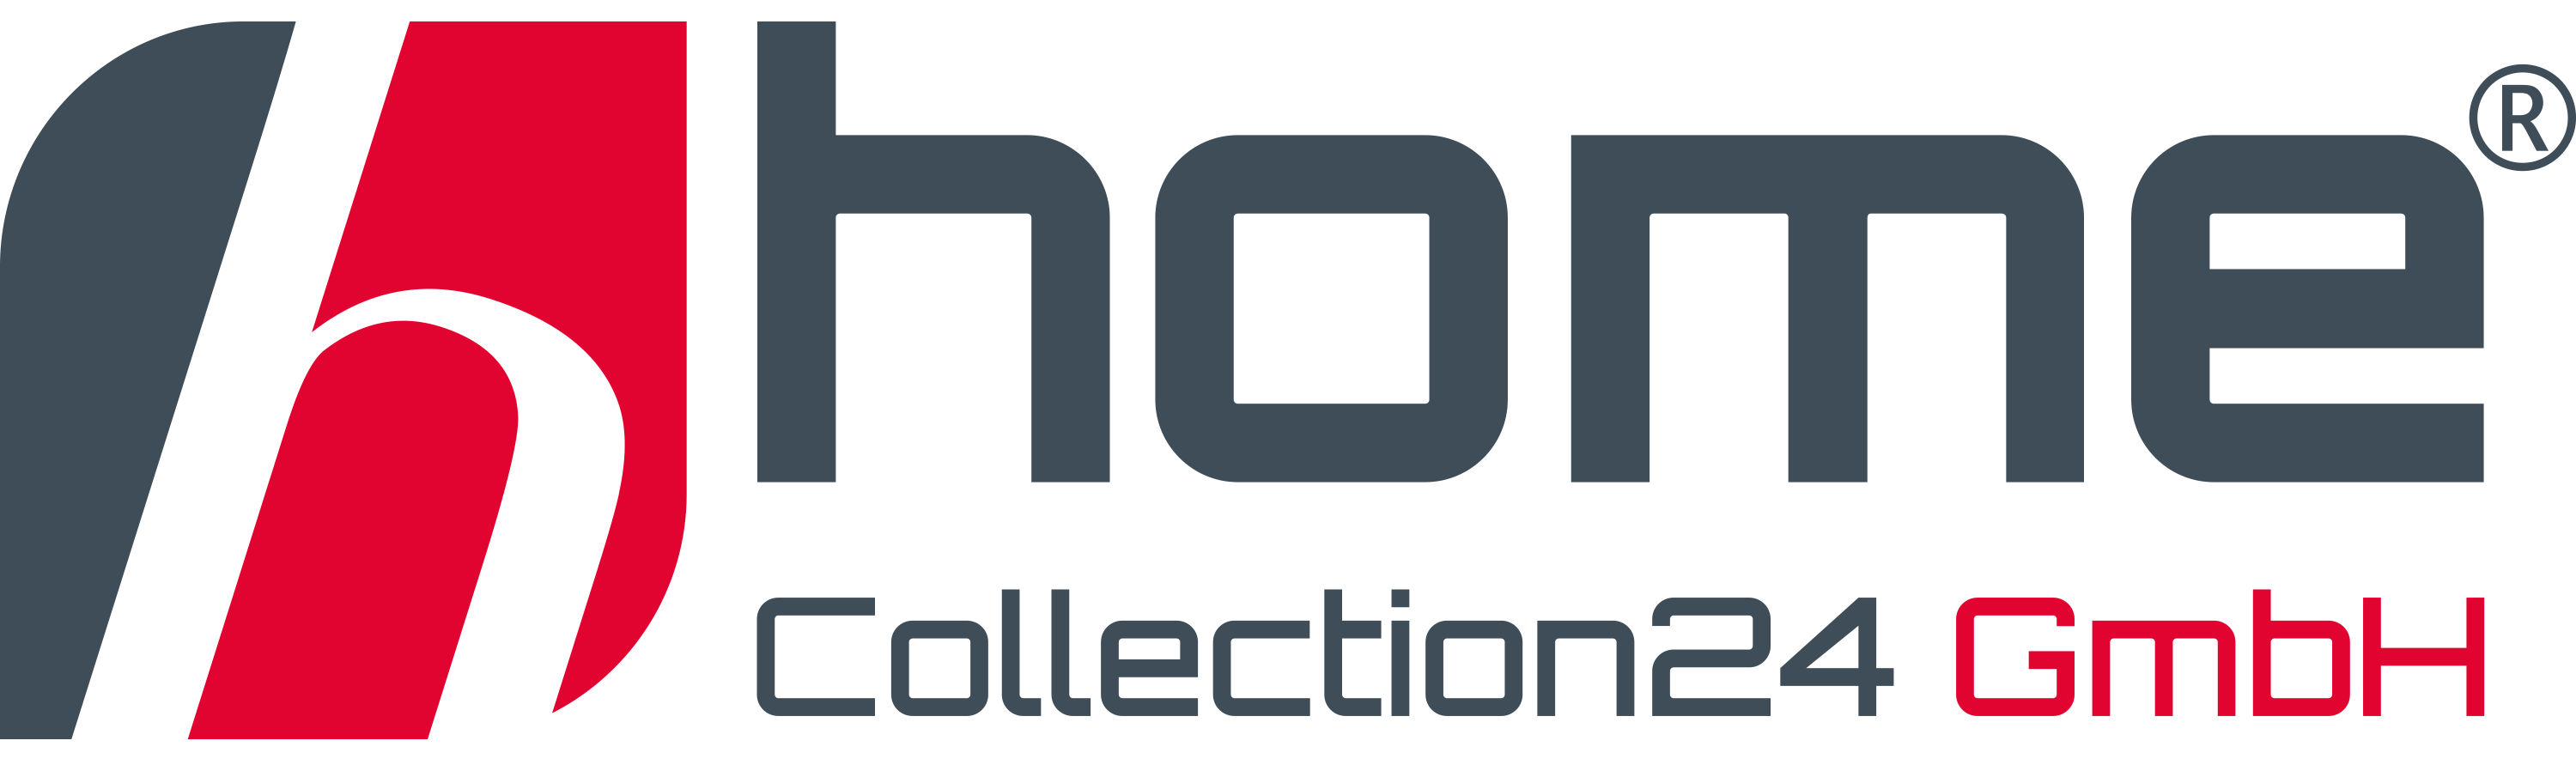 Home Collection24 GmbH® Onlineshop